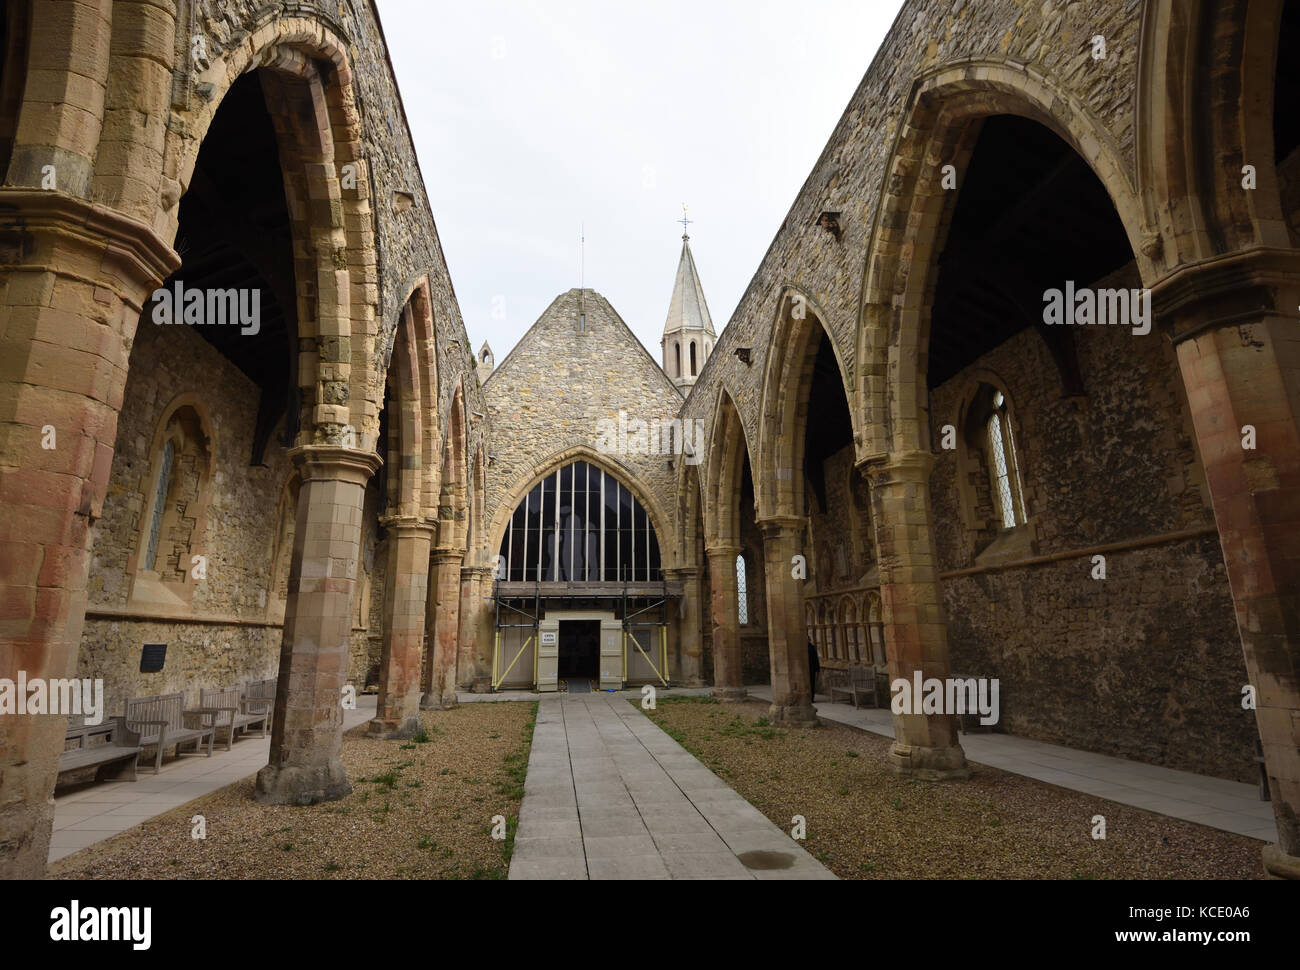 The Royal Garrison Church. The nave was damaged by a firebomb in 1941 but the chancel has been restored. Portsmouth, - Stock Image